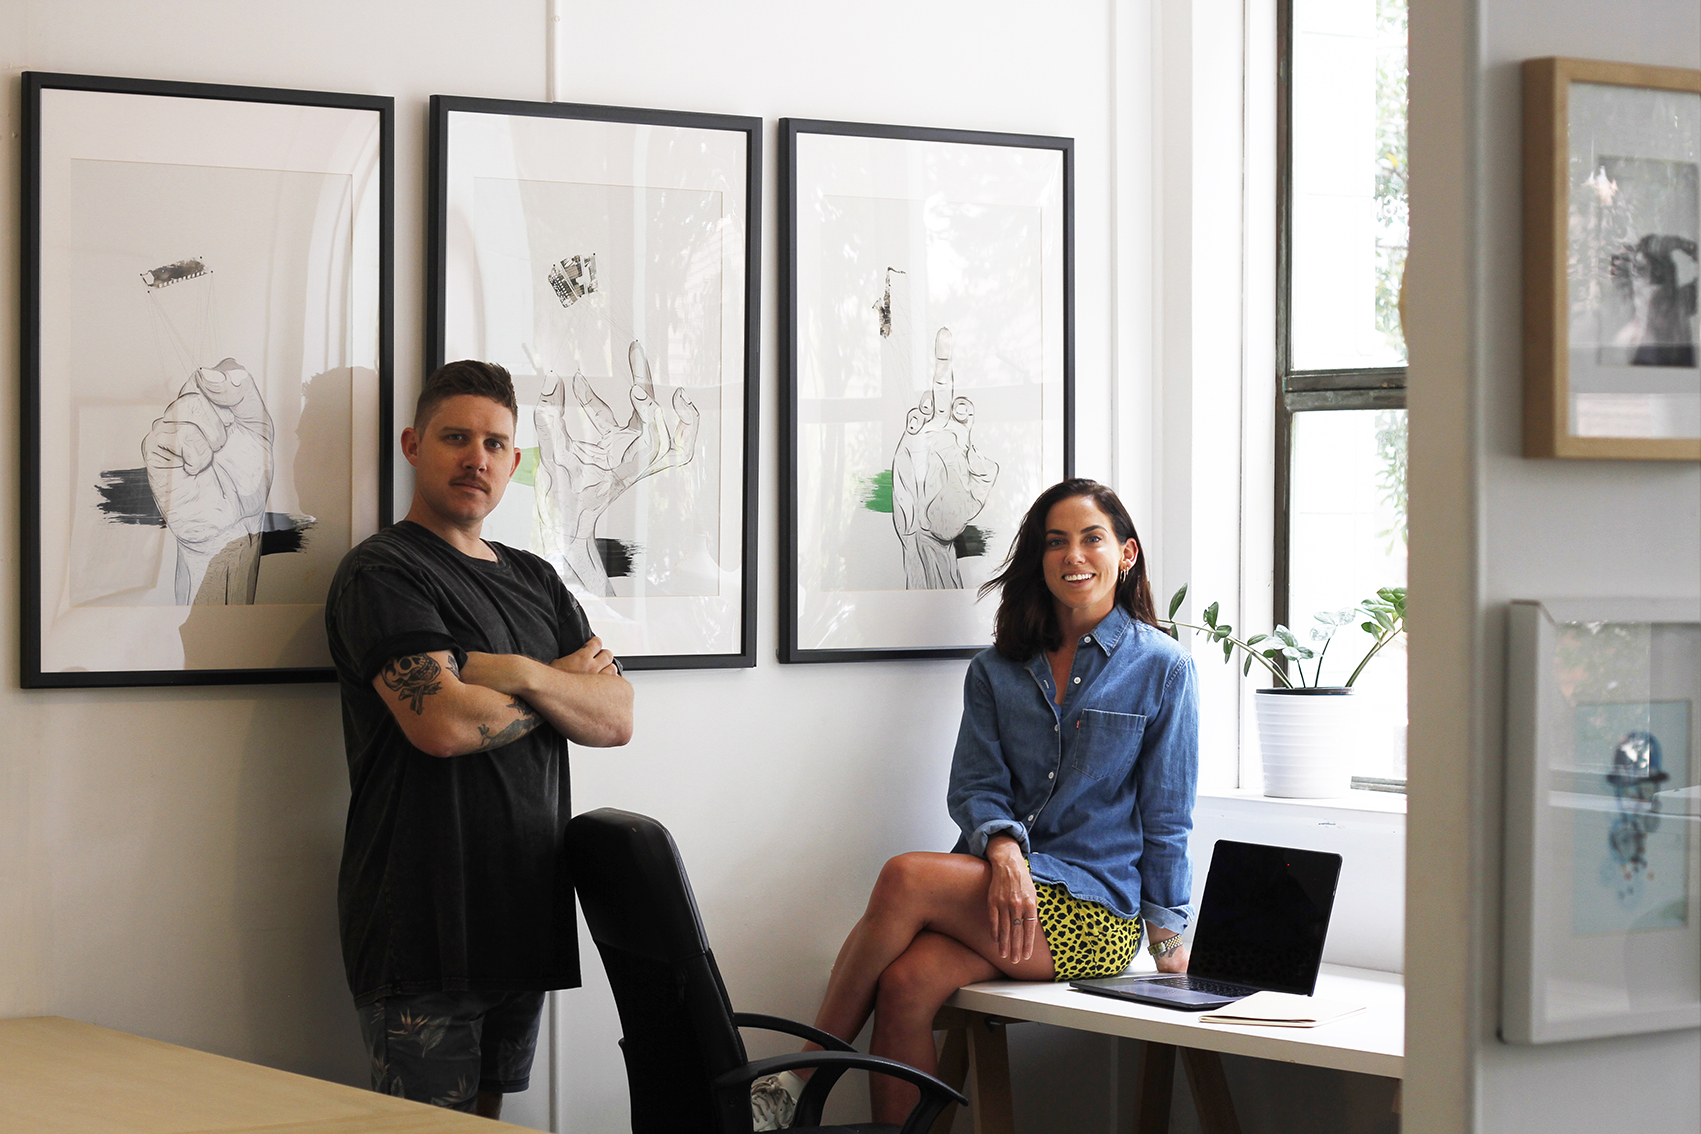 Abel and open for business: Nicole Hetherington and Simon Fowler officially launch creative consultancy